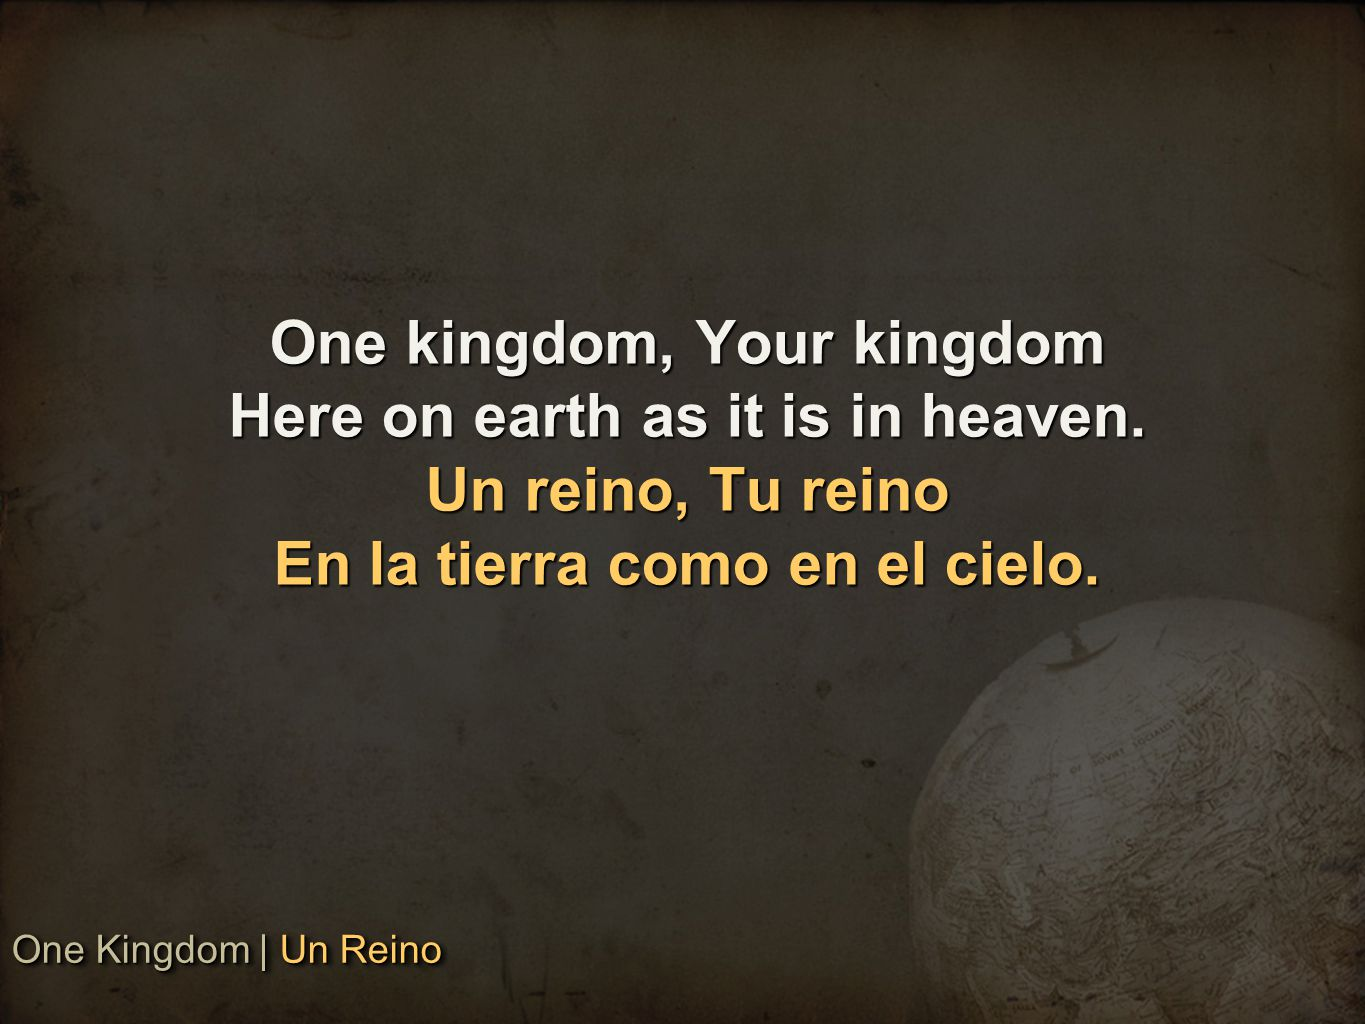 One kingdom, Your kingdom Here on earth as it is in heaven.